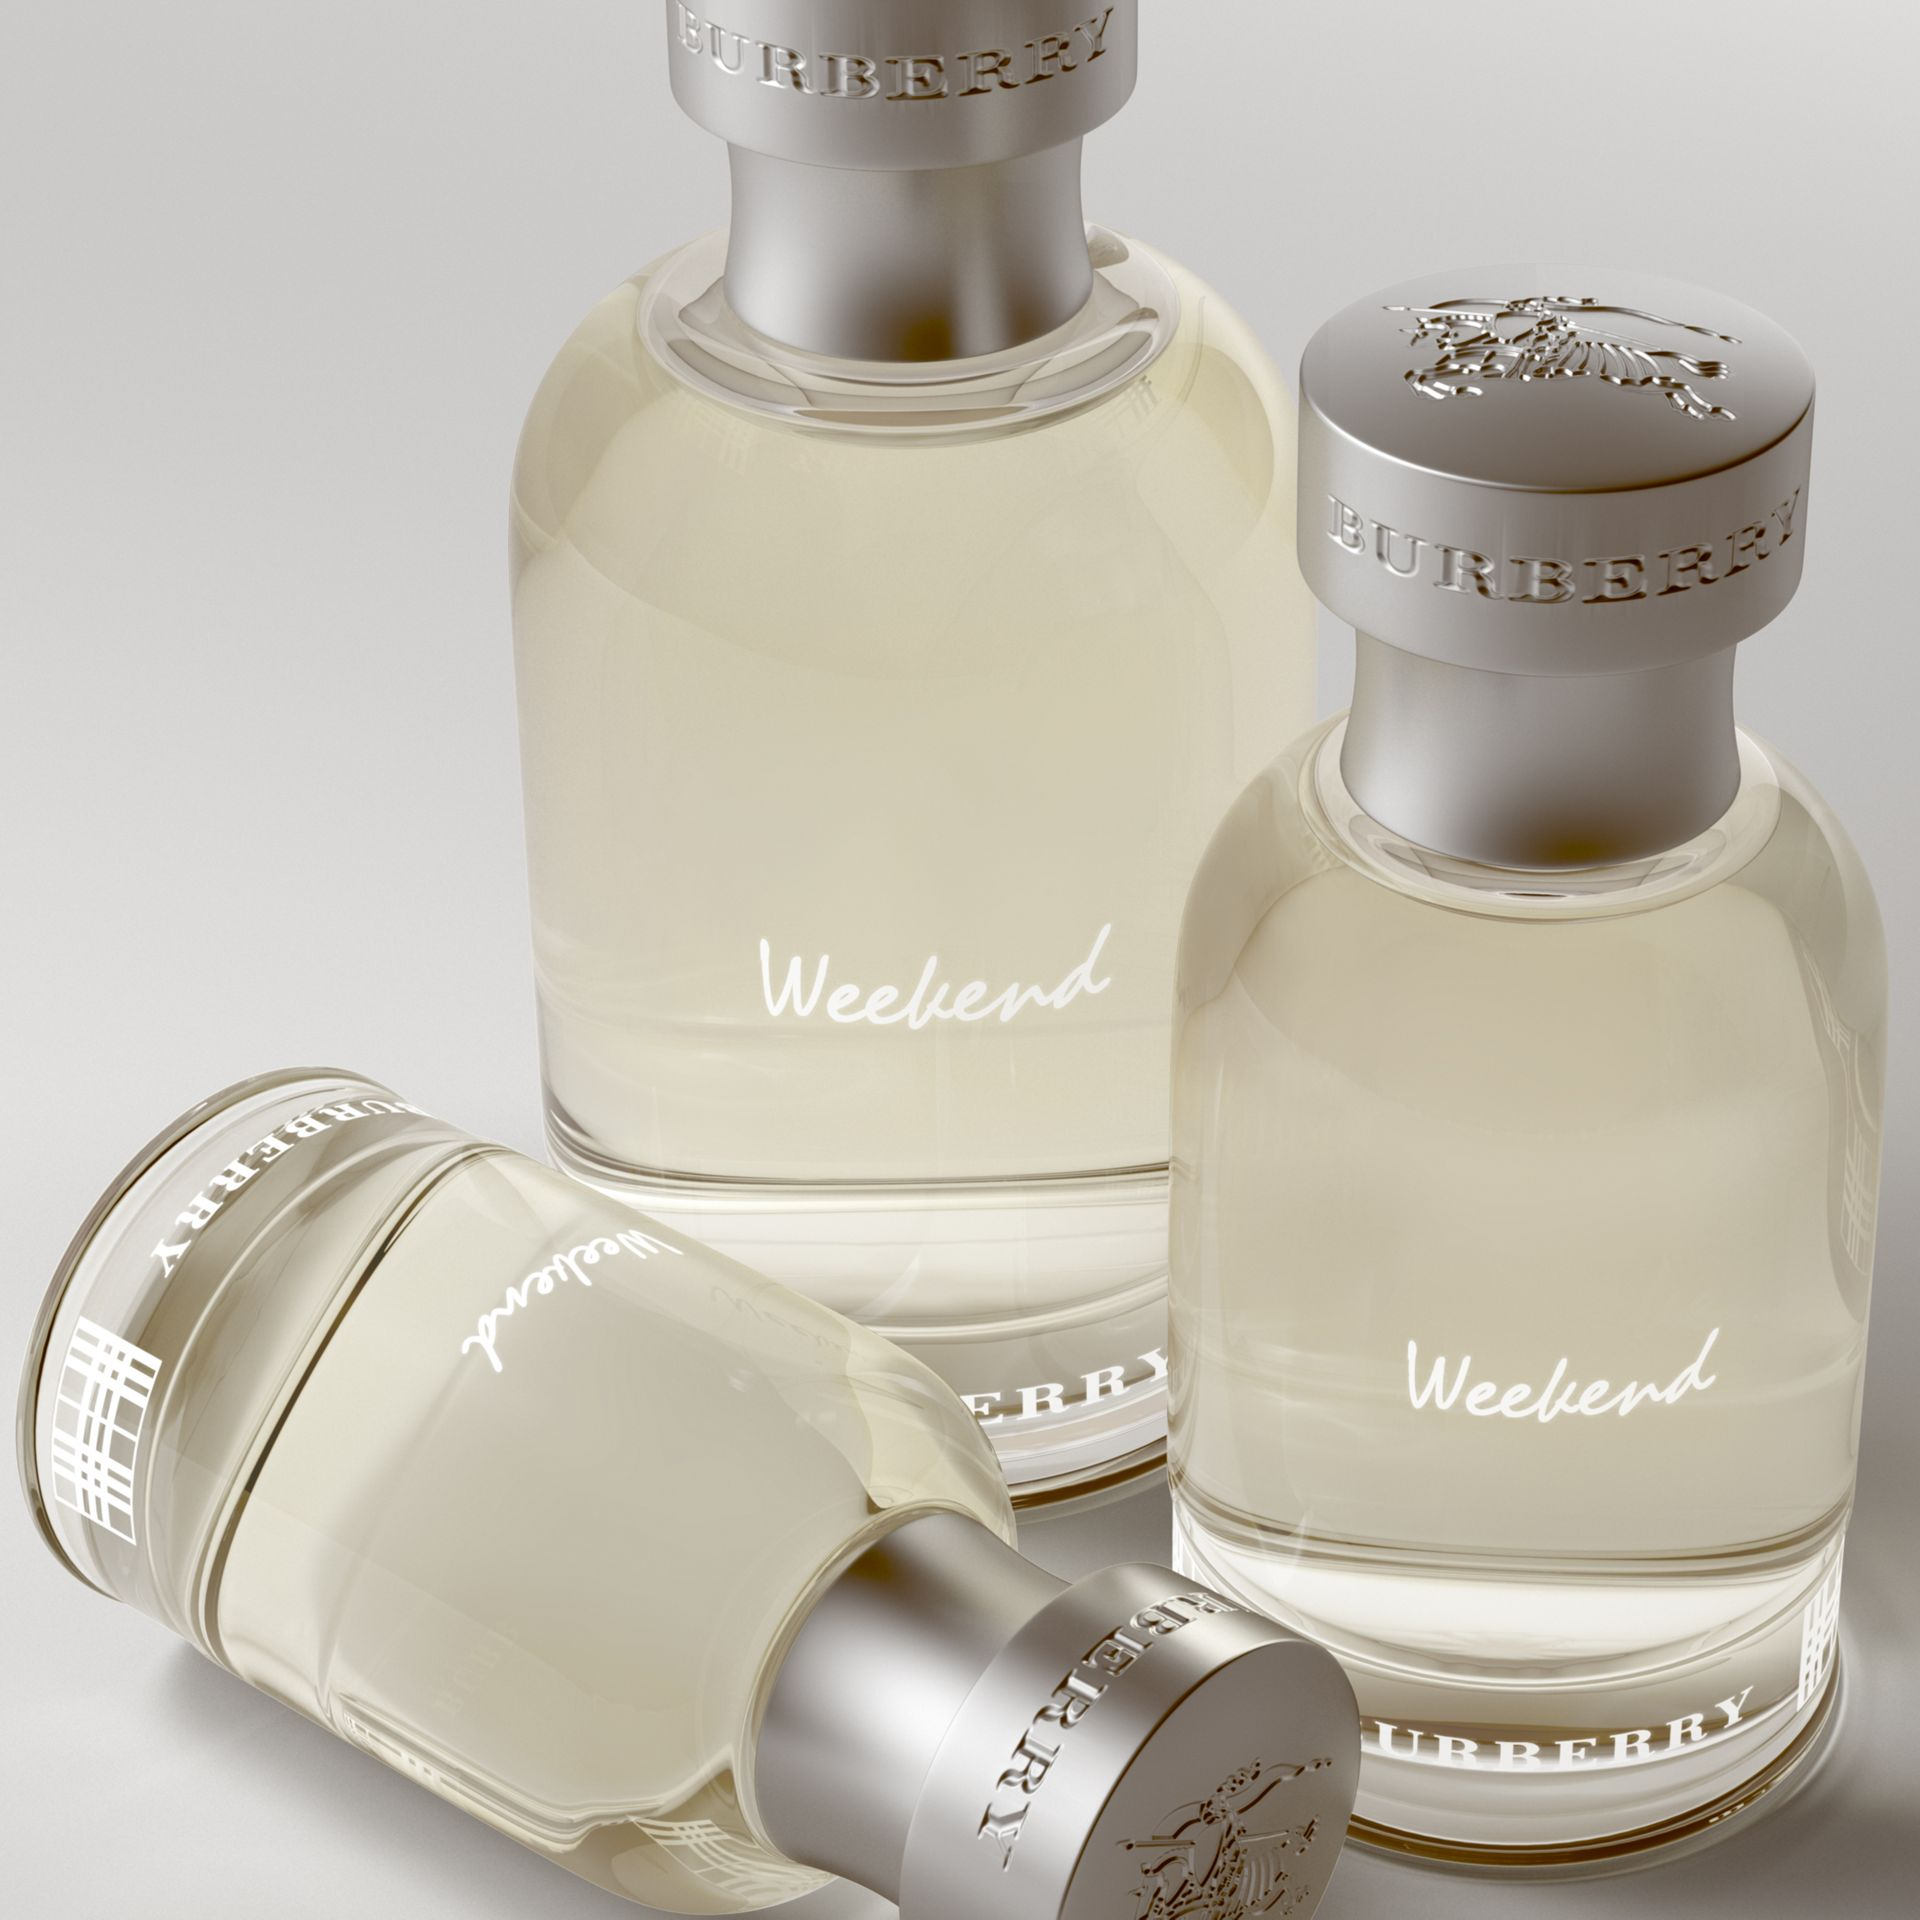 Burberry Weekend Eau de Toilette 100ml - Men | Burberry Hong Kong - gallery image 1